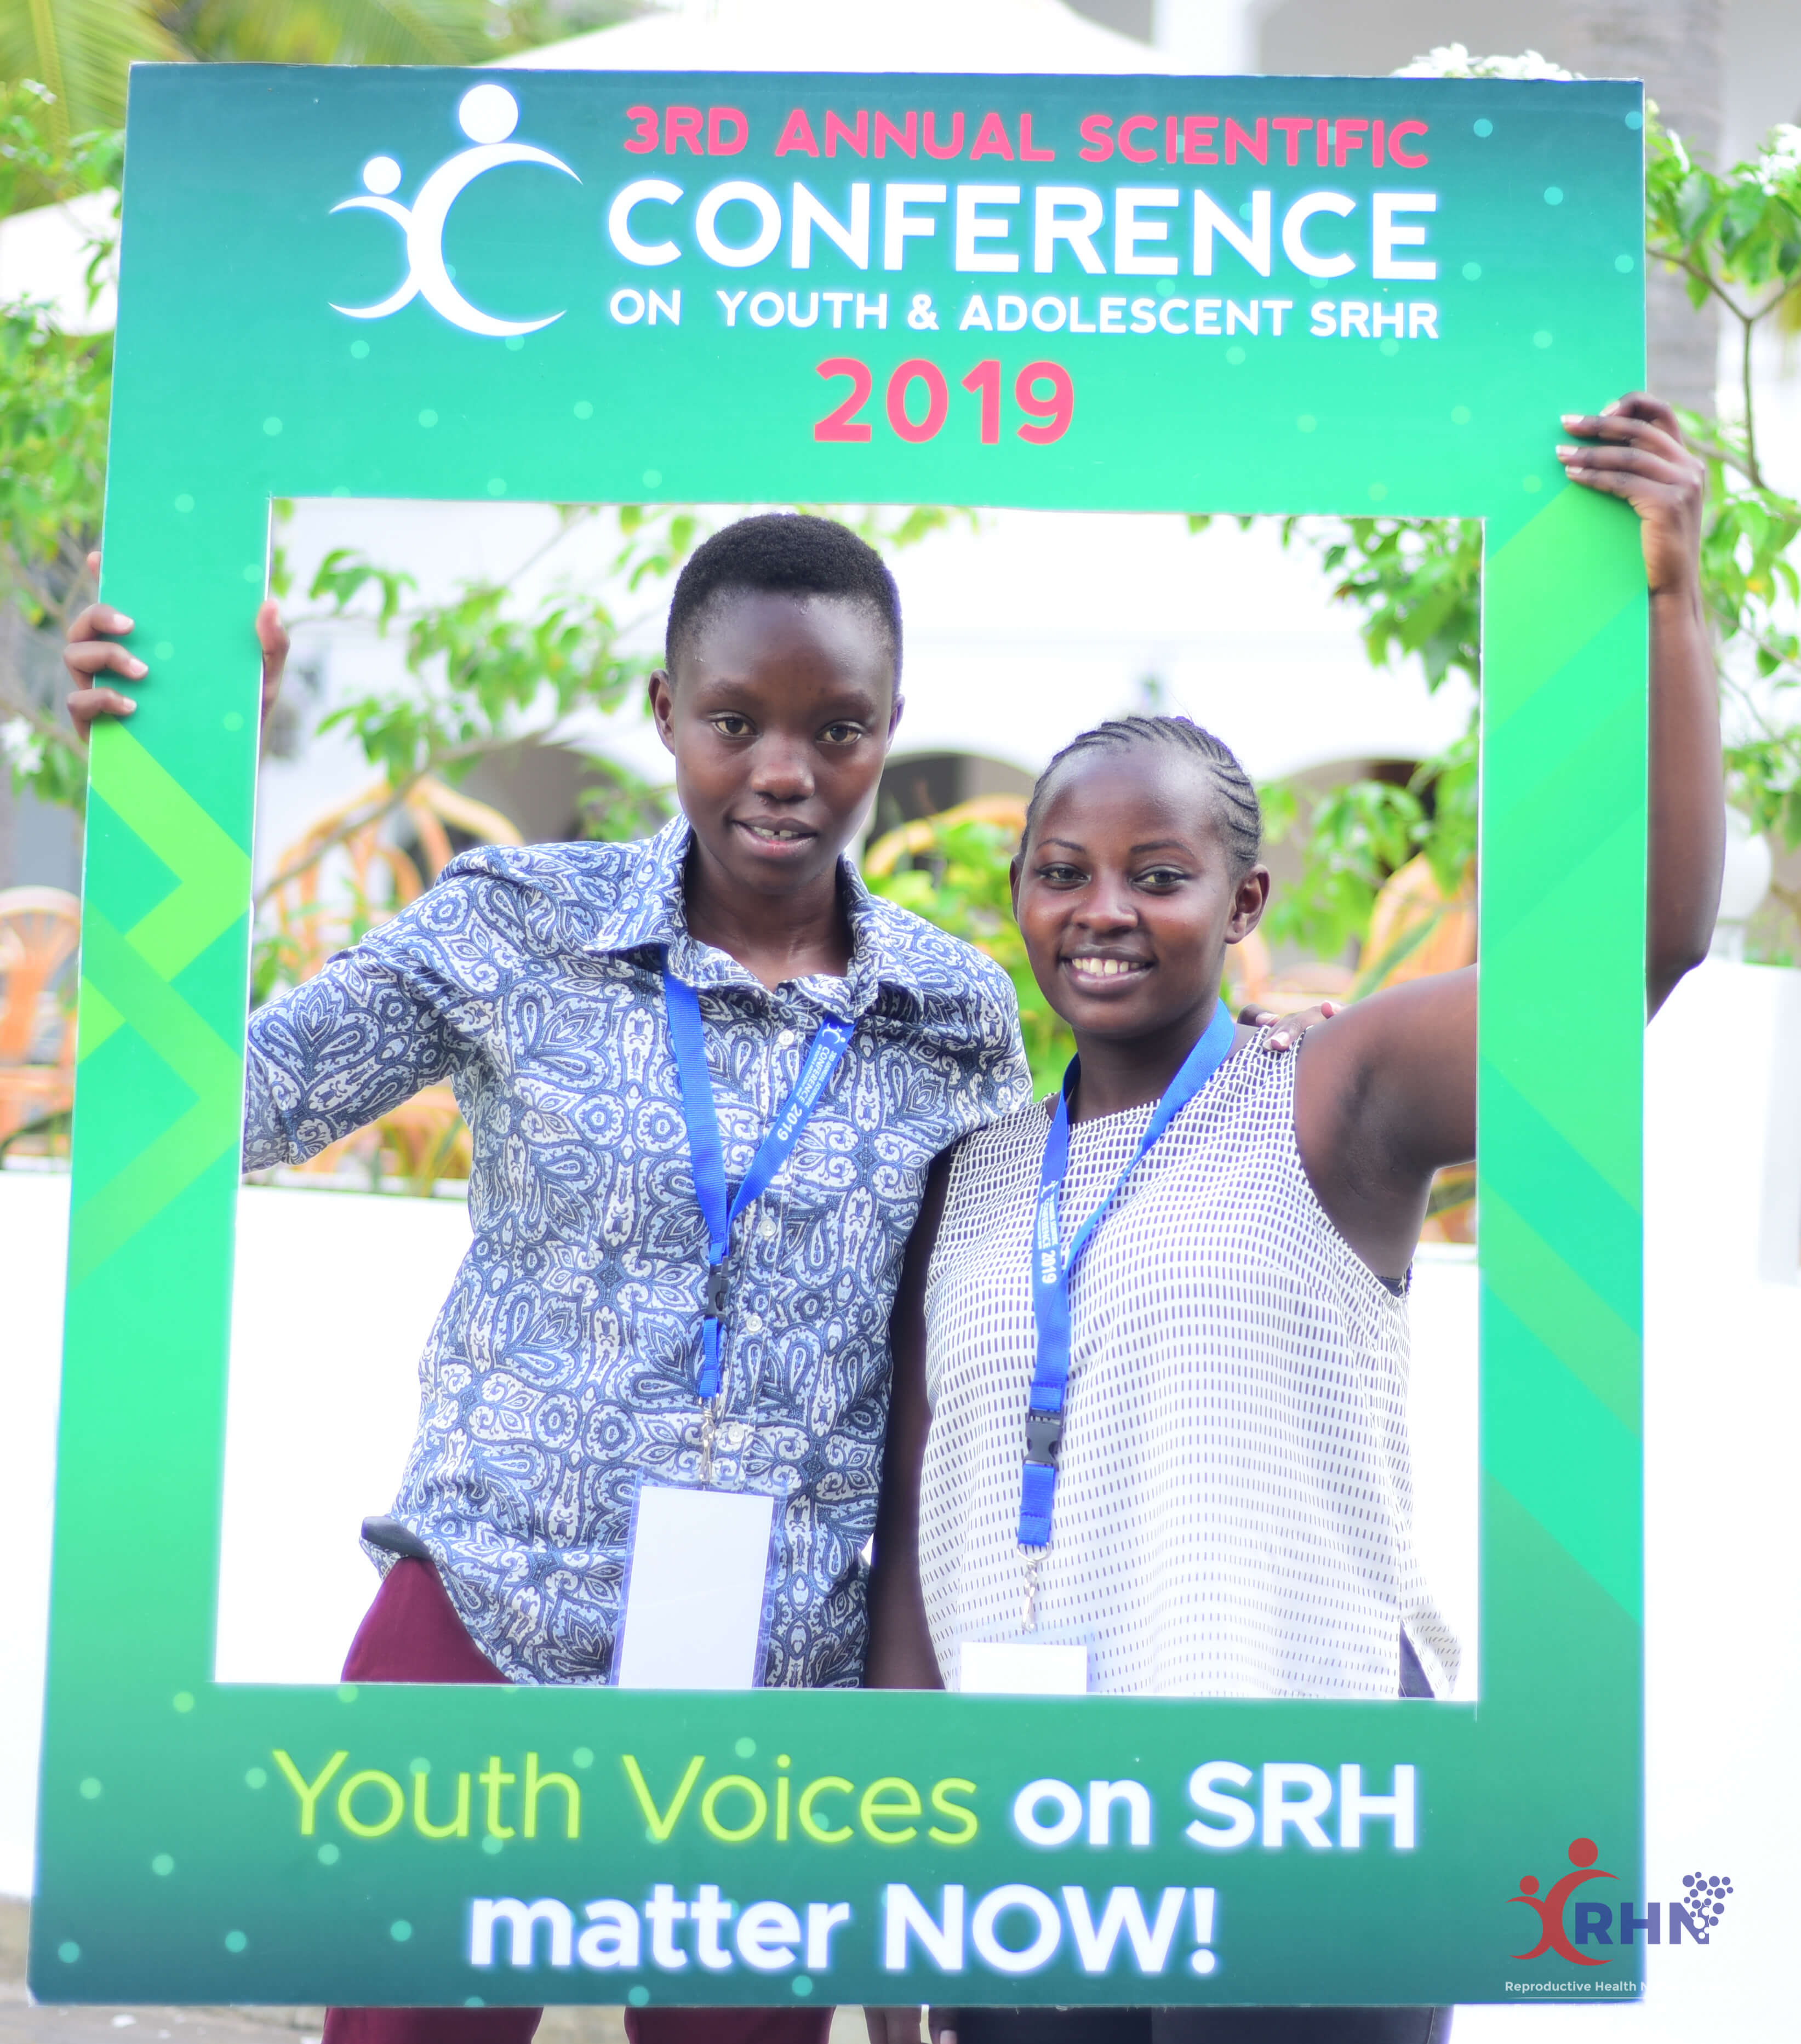 3rd Annual Conference – Reproductive Health Network